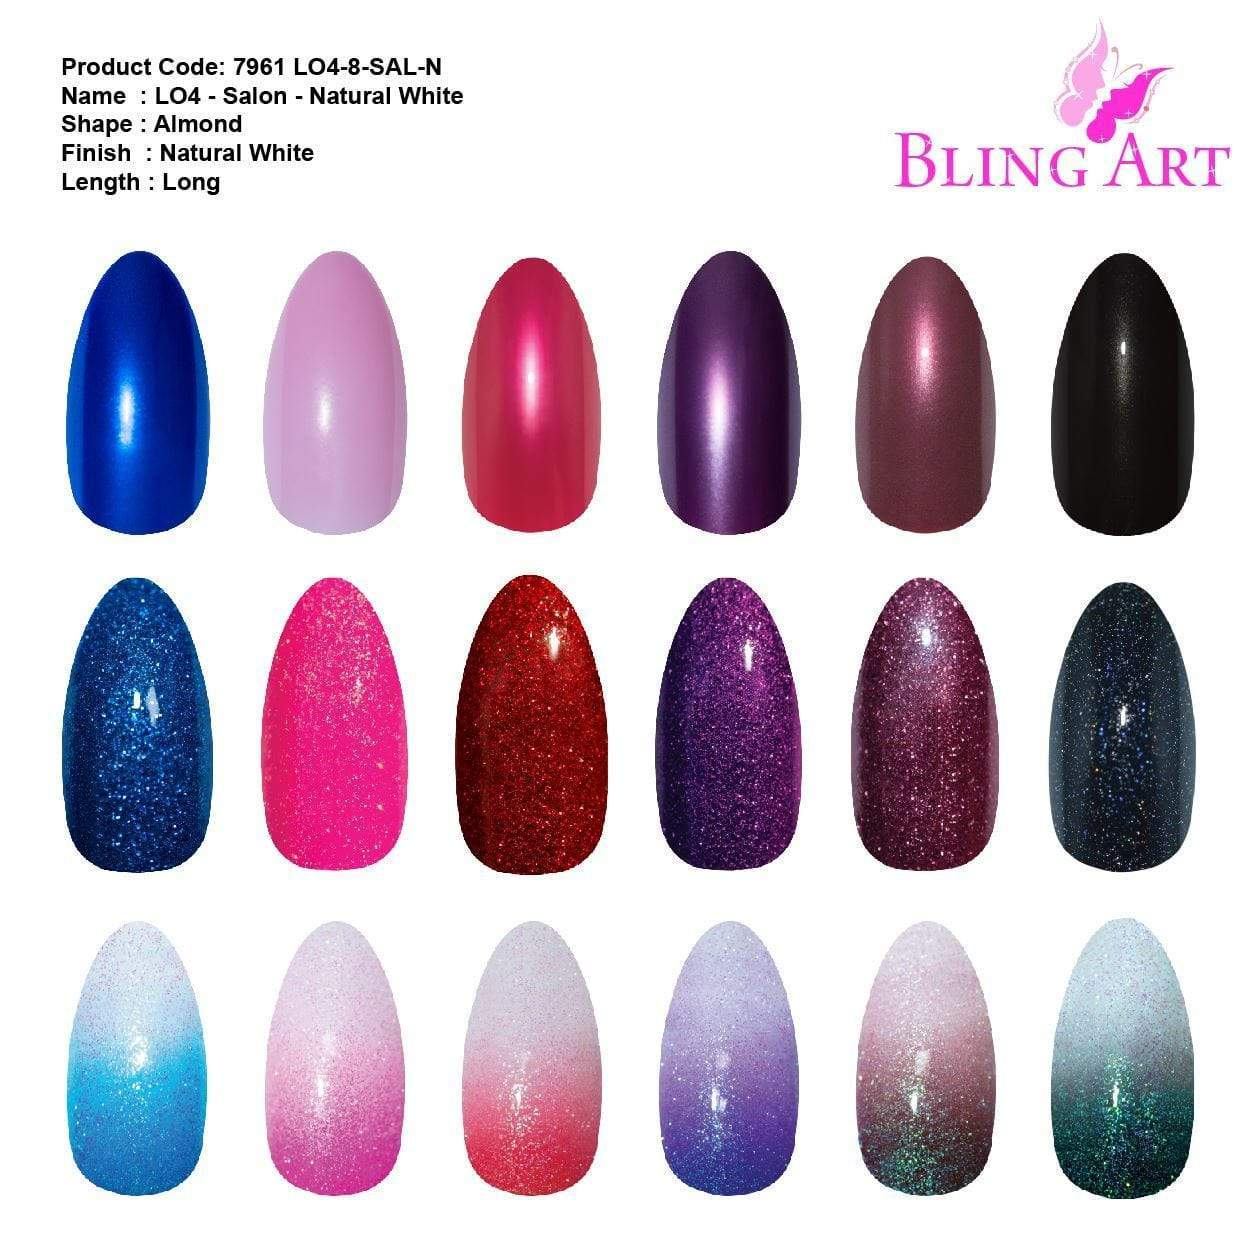 False Nails by Bling Art 360 Stiletto Almond Long Natural Acrylic Fake